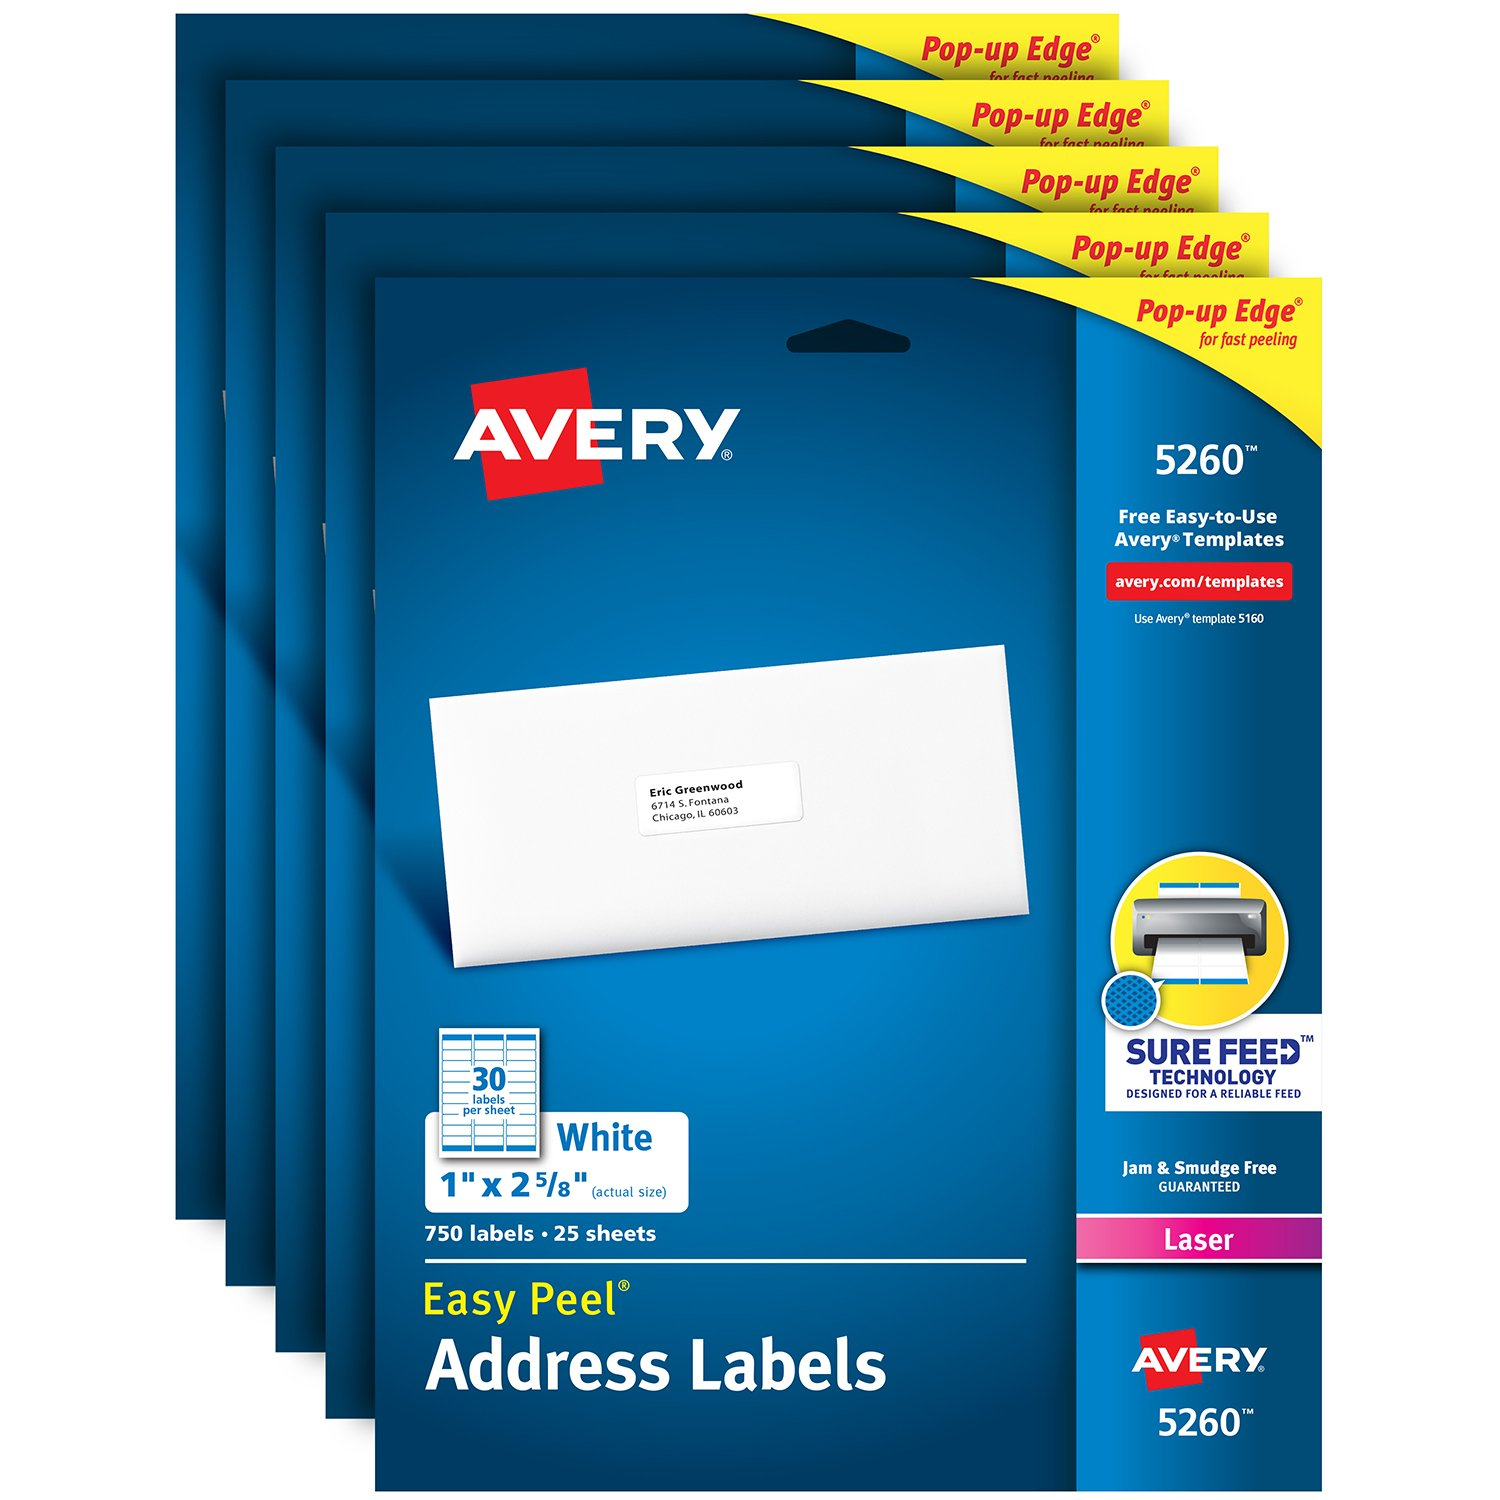 amazoncom avery address labels with sure feed for laser printers 1 x 2 58 3 750 labels great for fba labels 5 packs 5260 office products